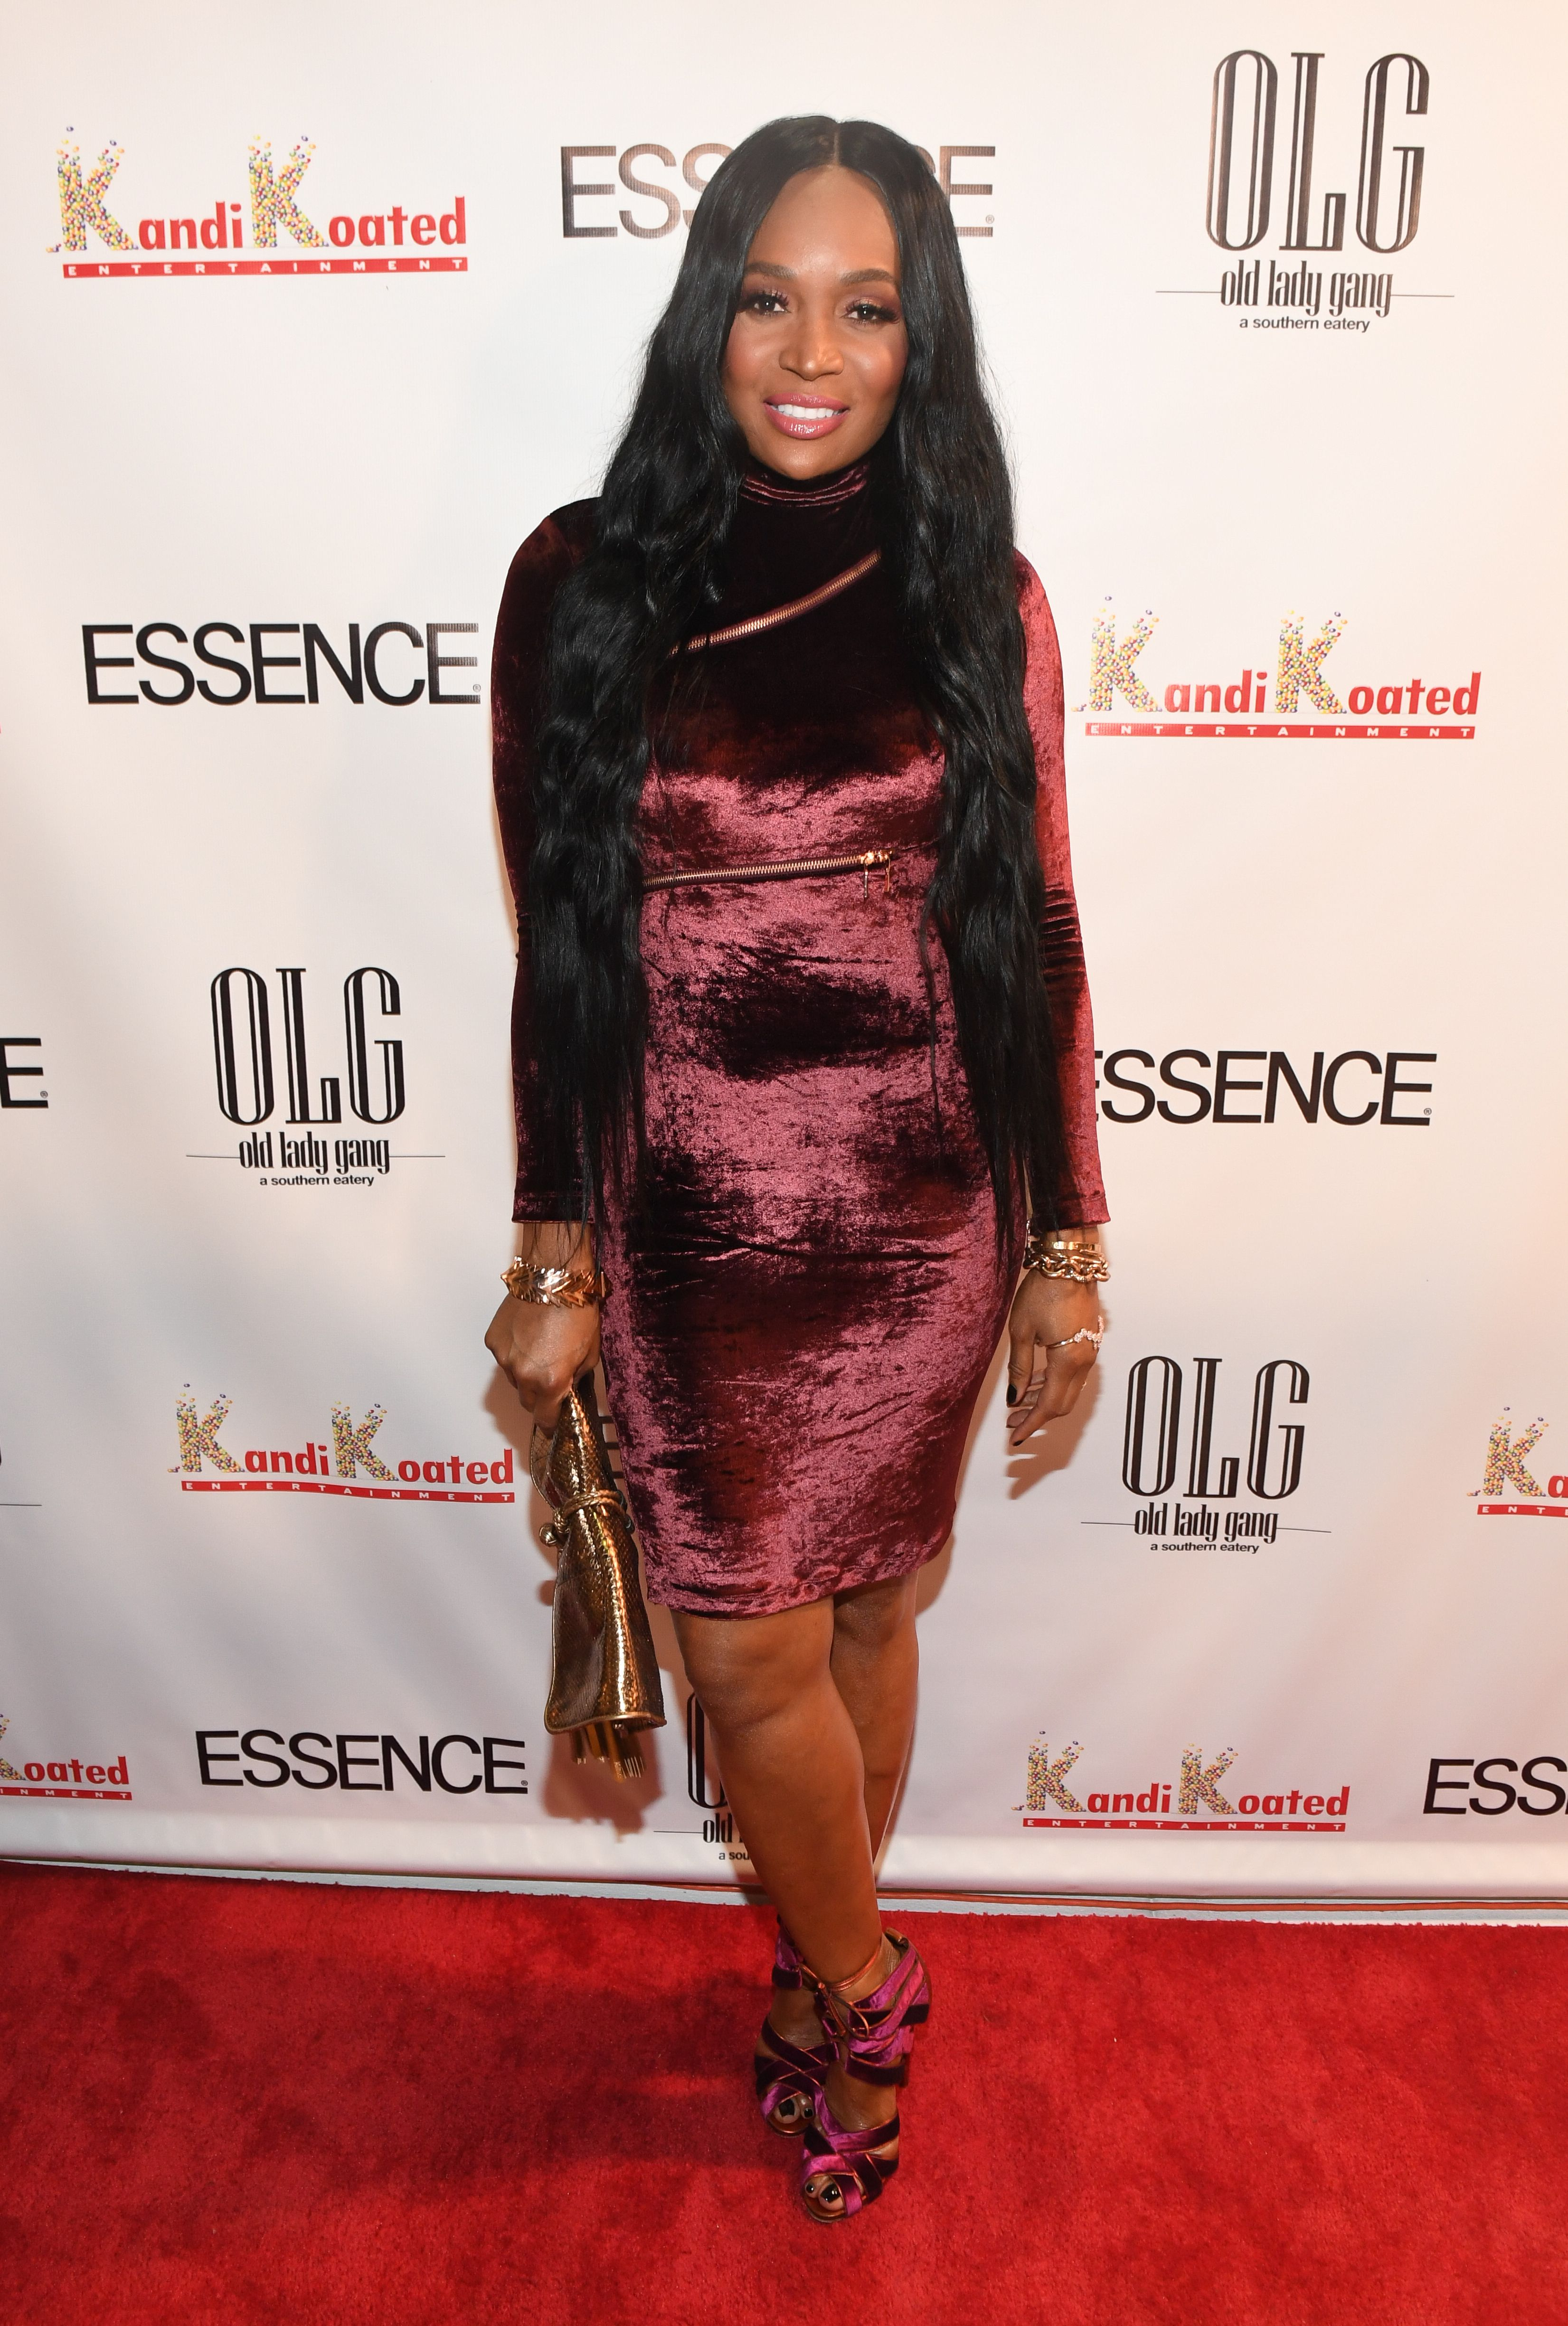 Marlo Hampton attends Essence Magazine's celebration of its October cover featuring Kandi Burruss in Atlanta, Georgia on September 22, 2017 | Photo: Getty Images